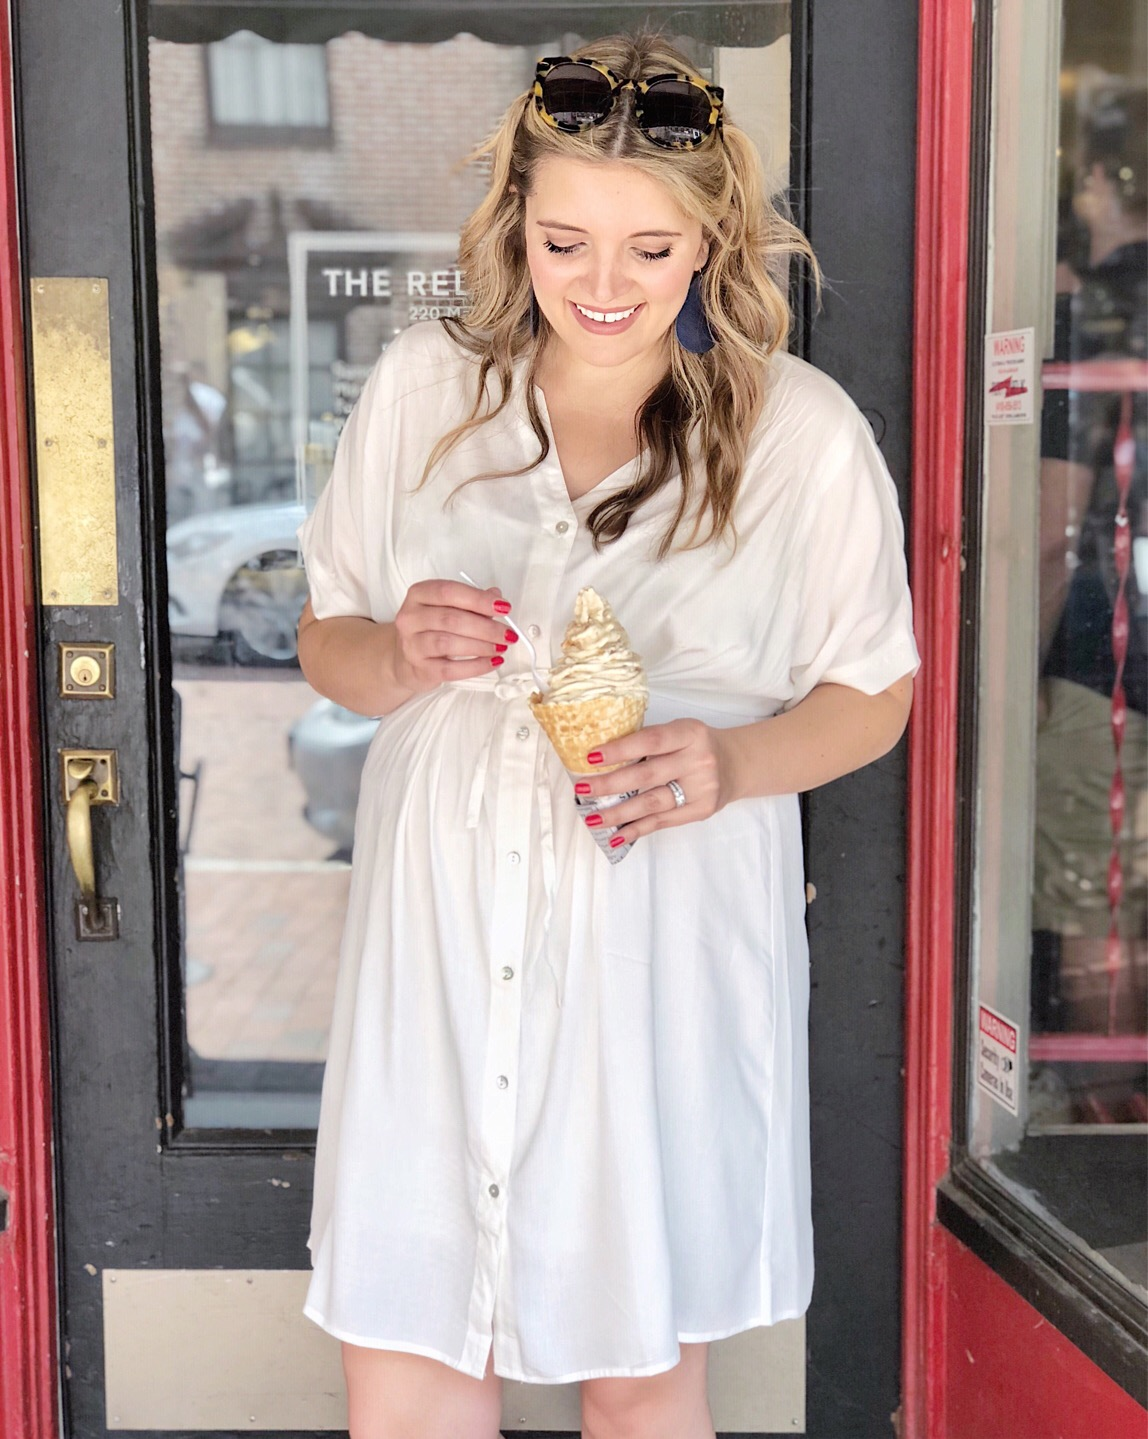 Annapolis Red Bean Ice cream | Don't miss the full Annapolis Weekend Guide: where to eat, what to do, and where to stay! | bylaurenm.com